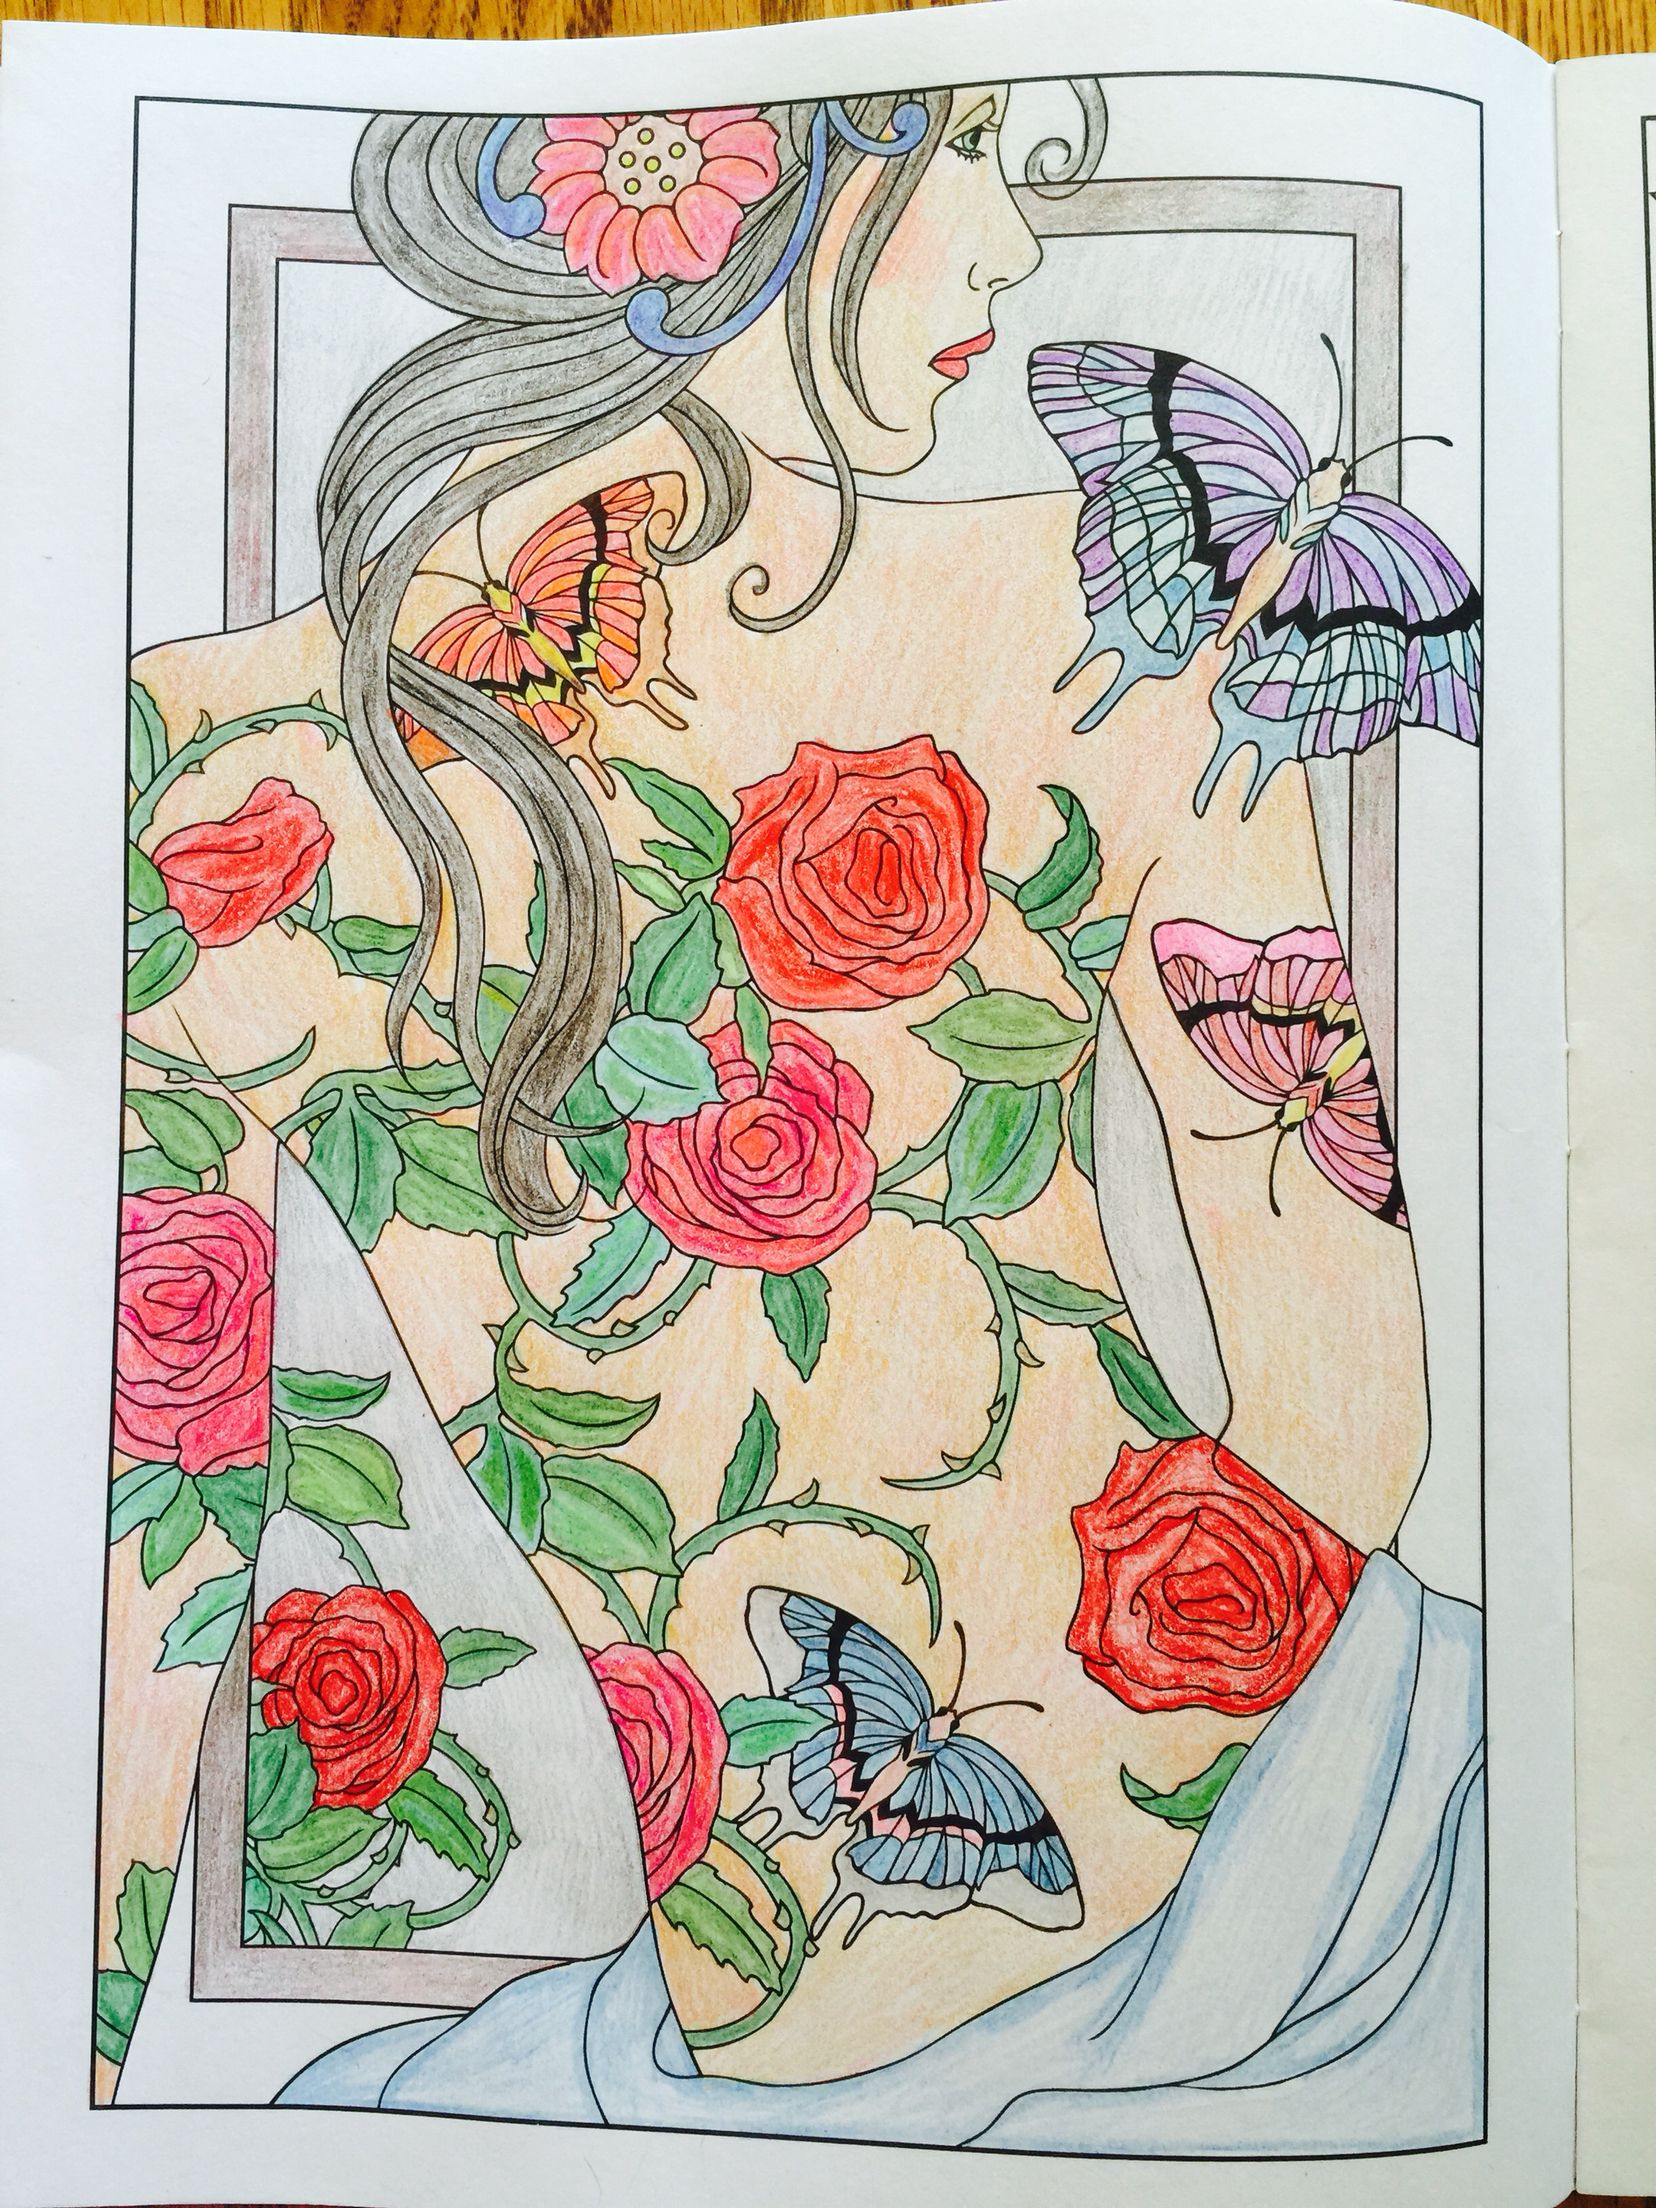 body art tattoo designs coloring book by marty noble - Body Art Tattoo Designs Coloring Book